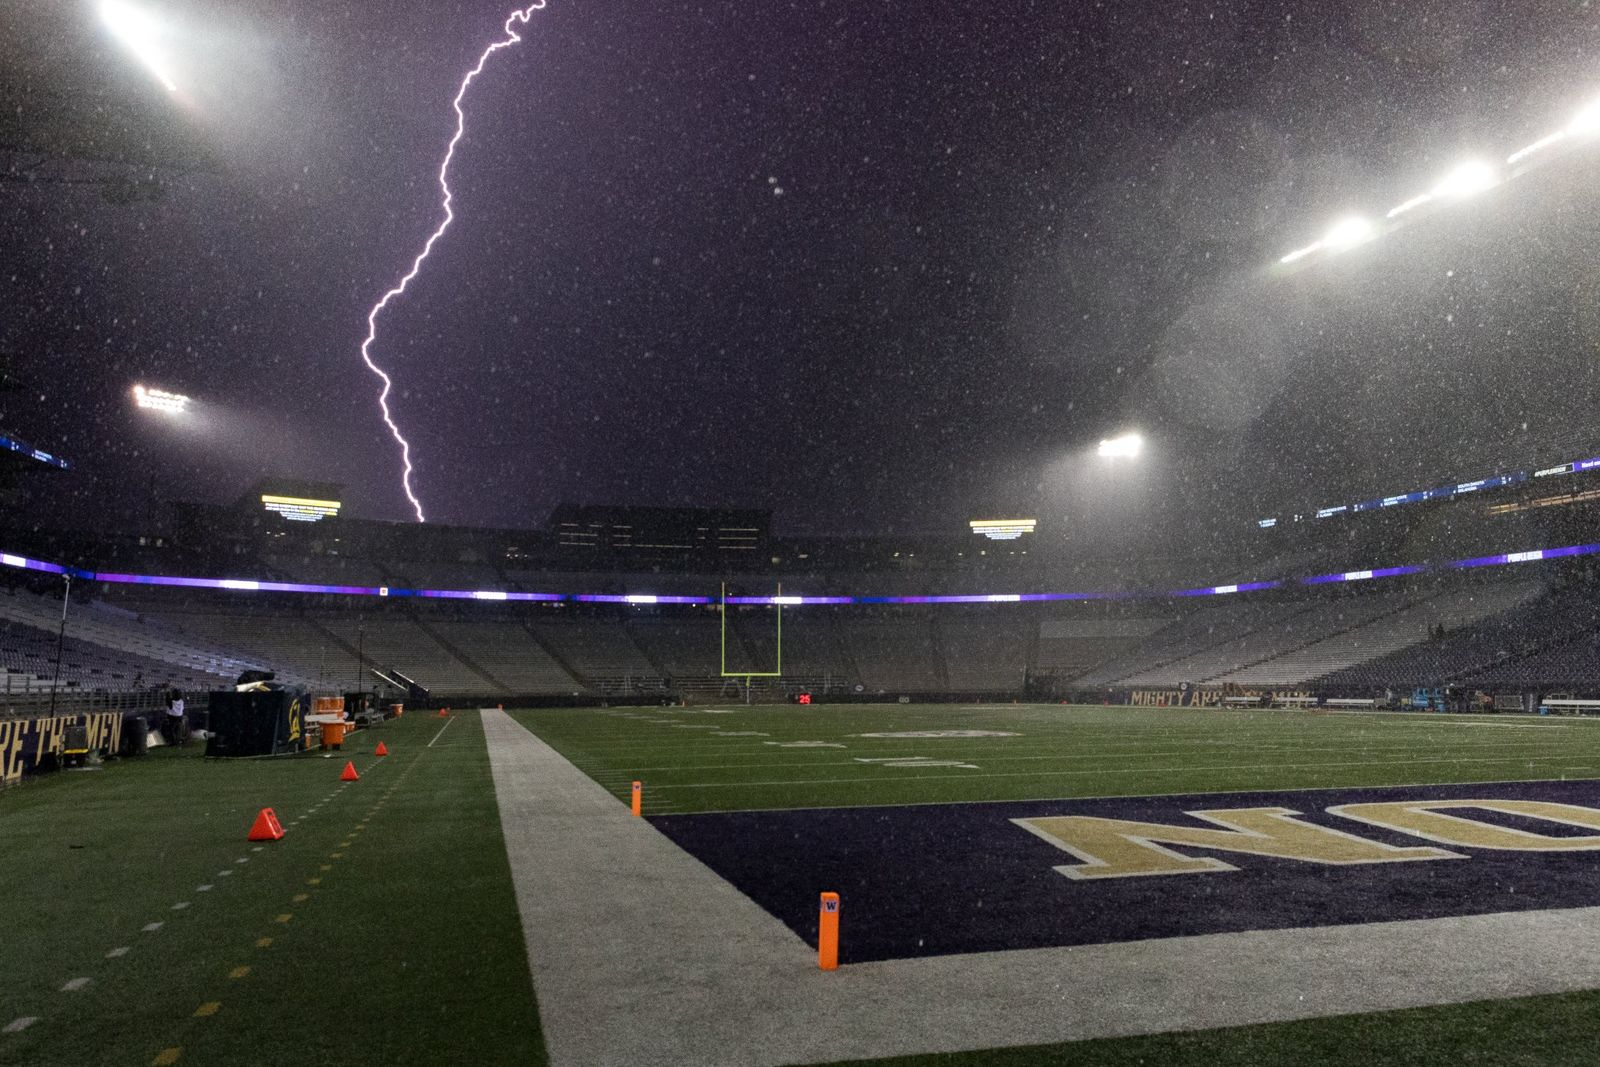 Lightning strikes near the Husky Stadium (Photo: Conor Courtney / The Daily of the University of Washington)